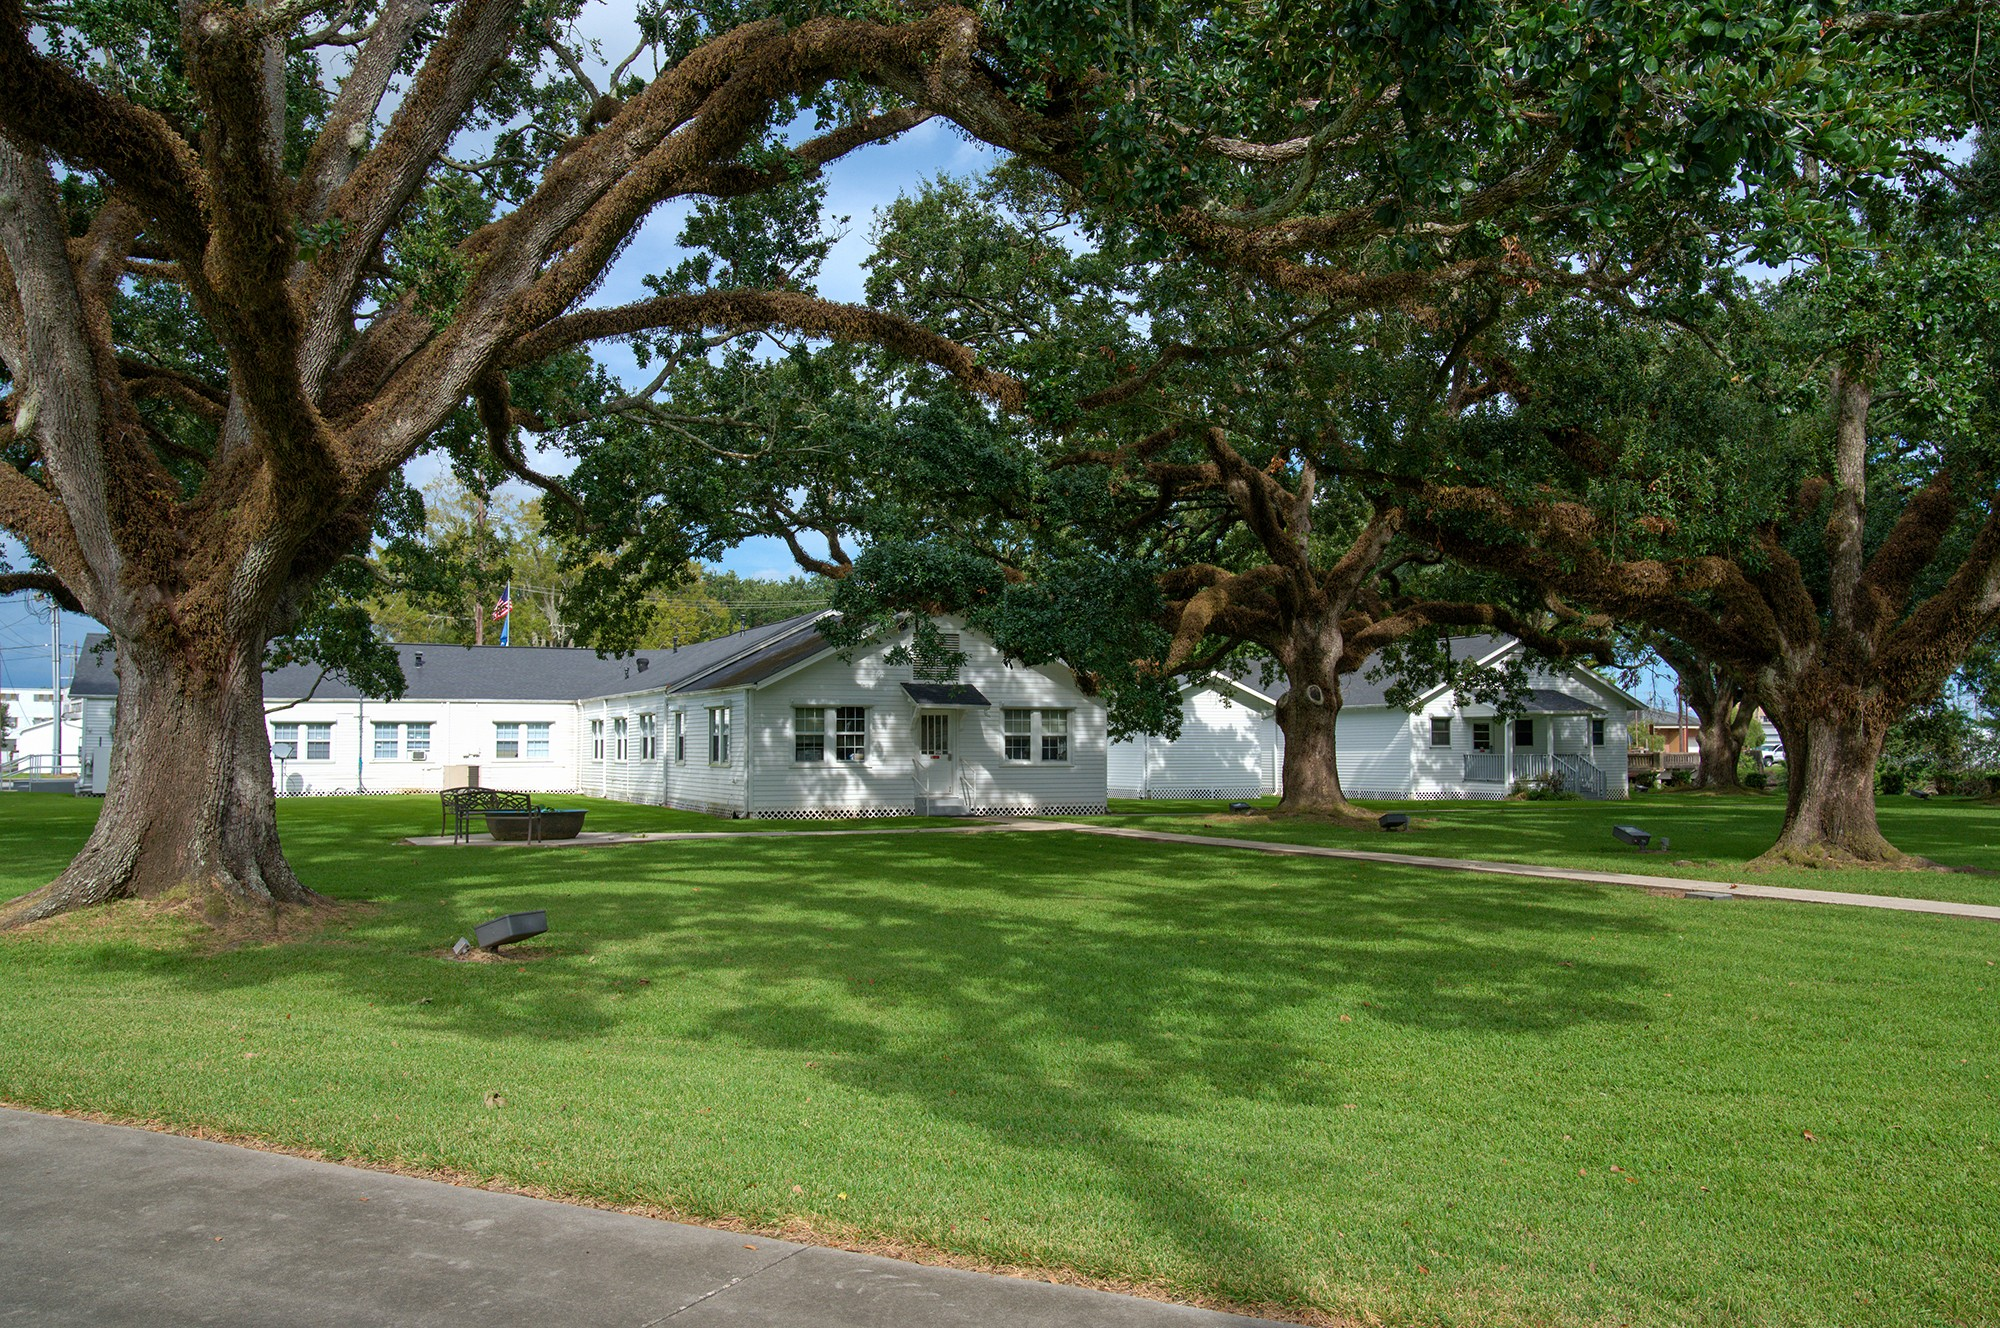 White buildings with green lawn and shade trees